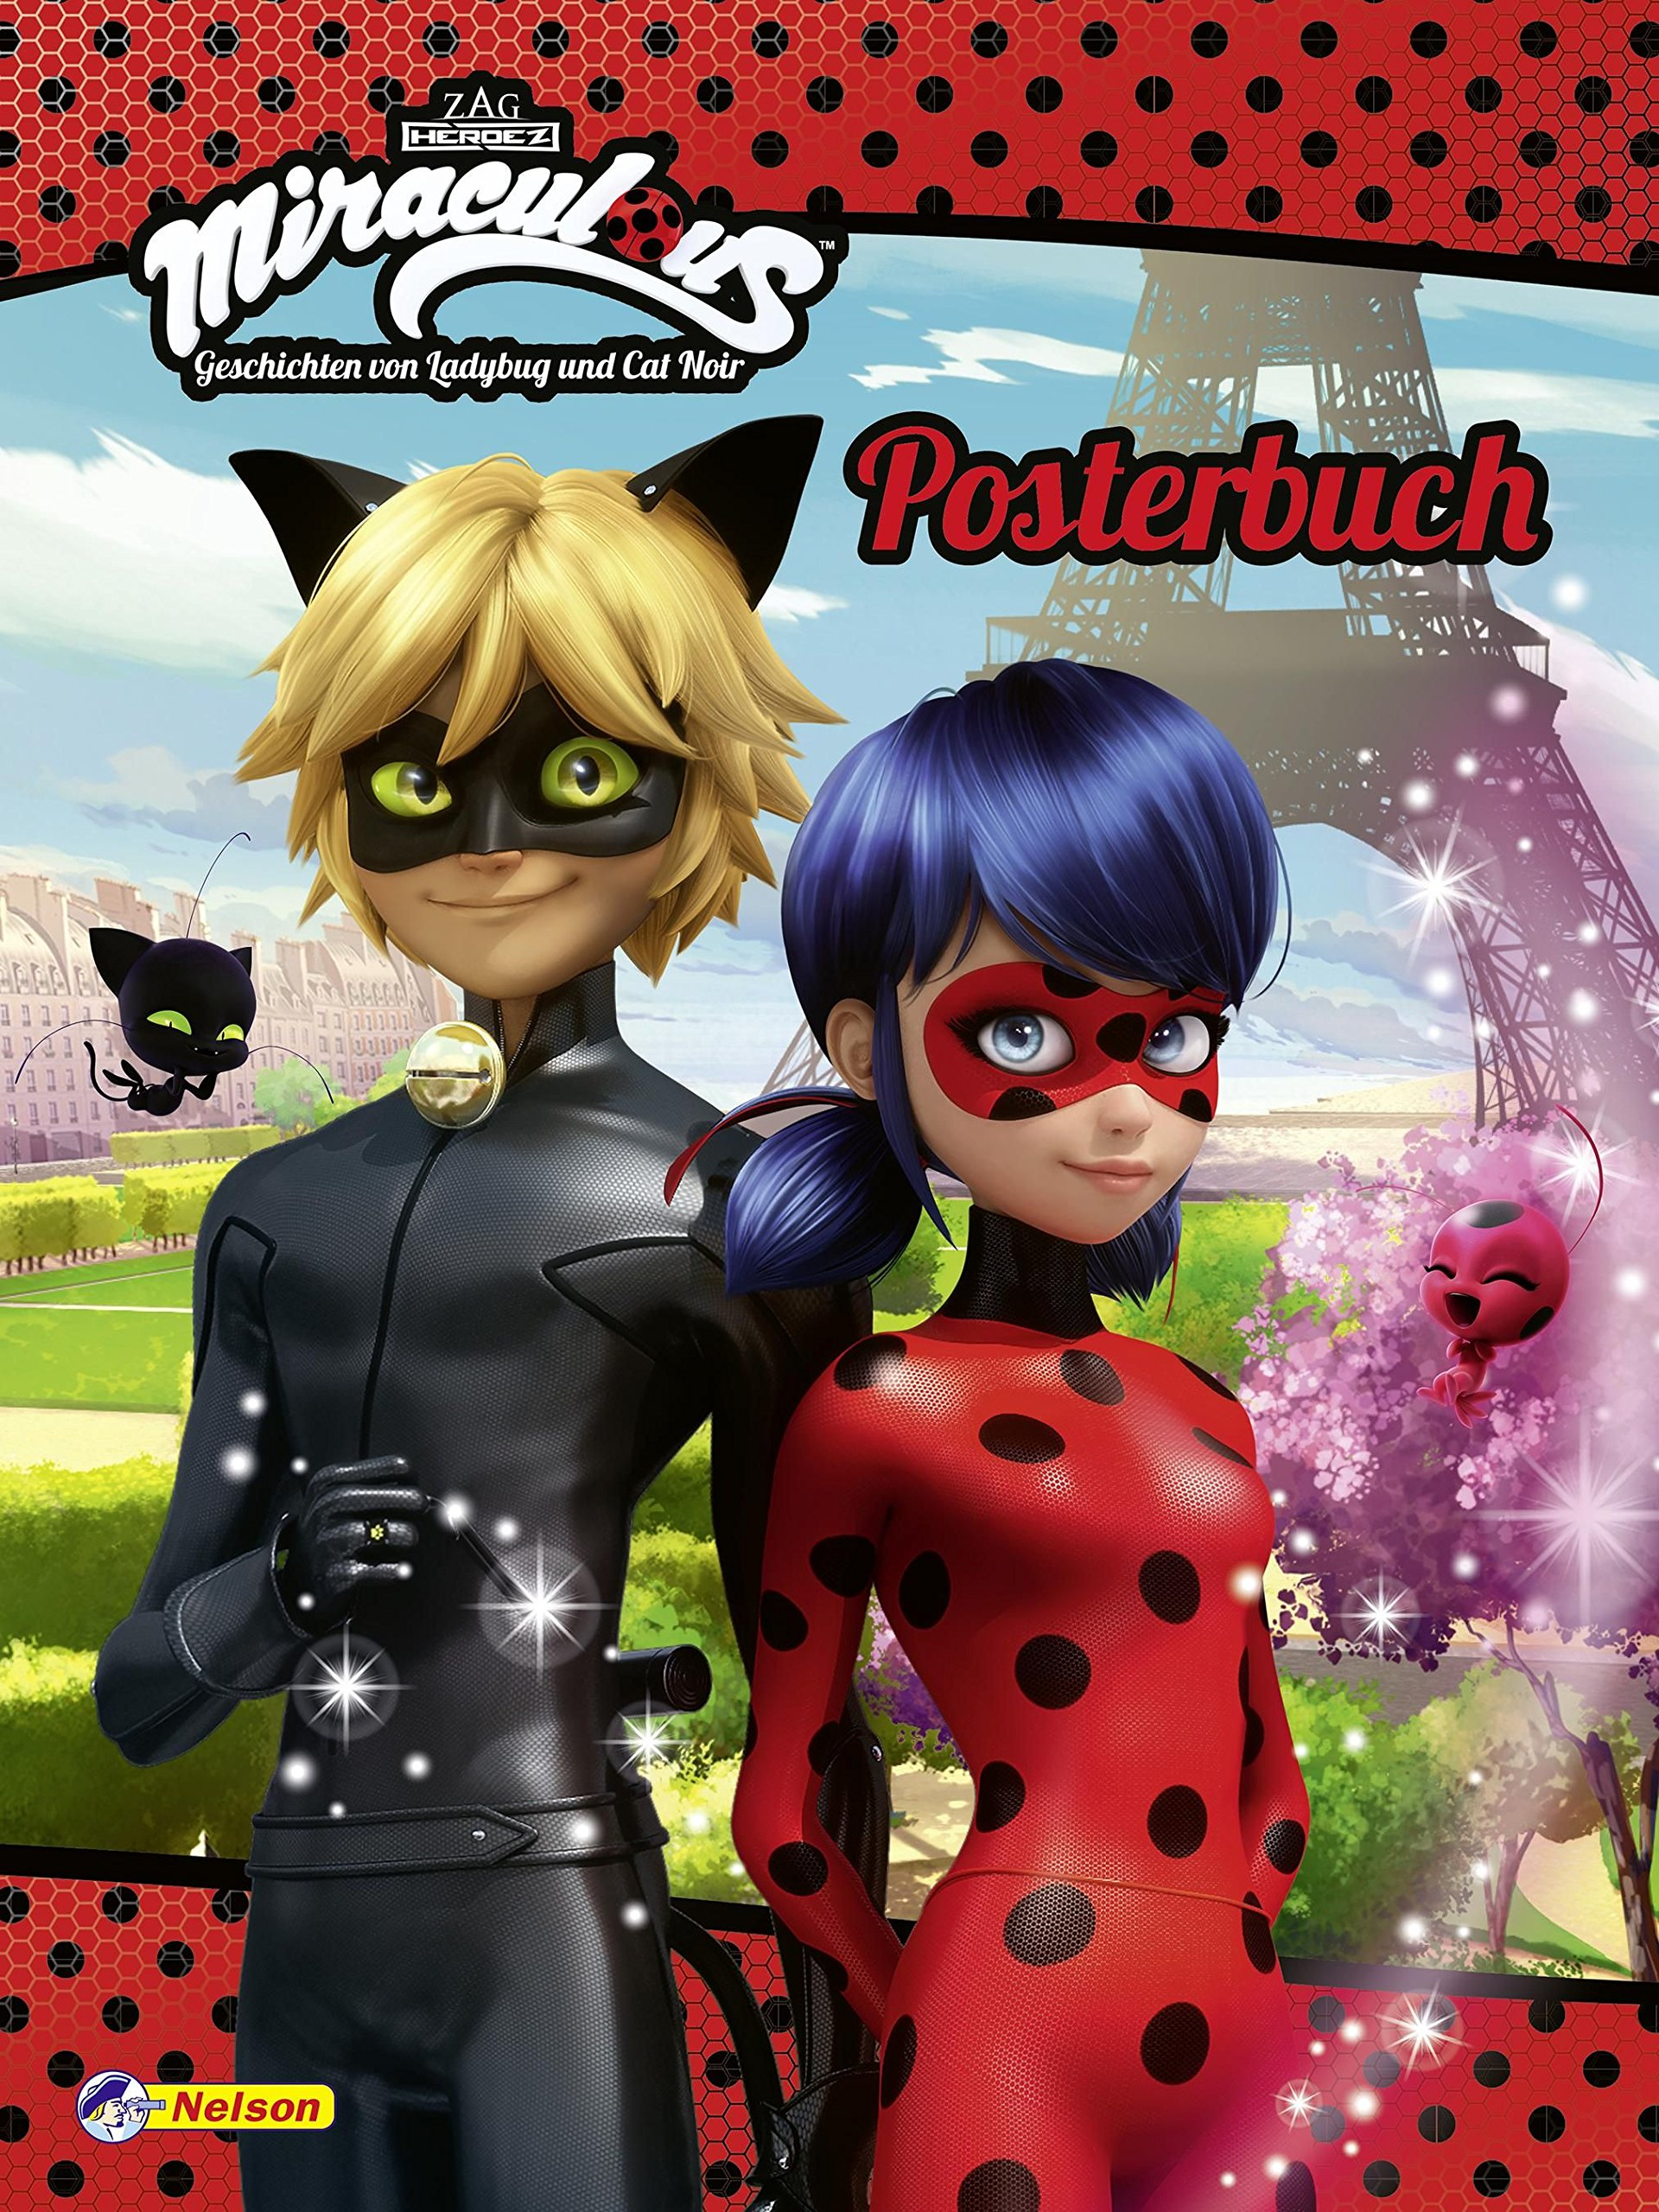 miraculous-posterbuch